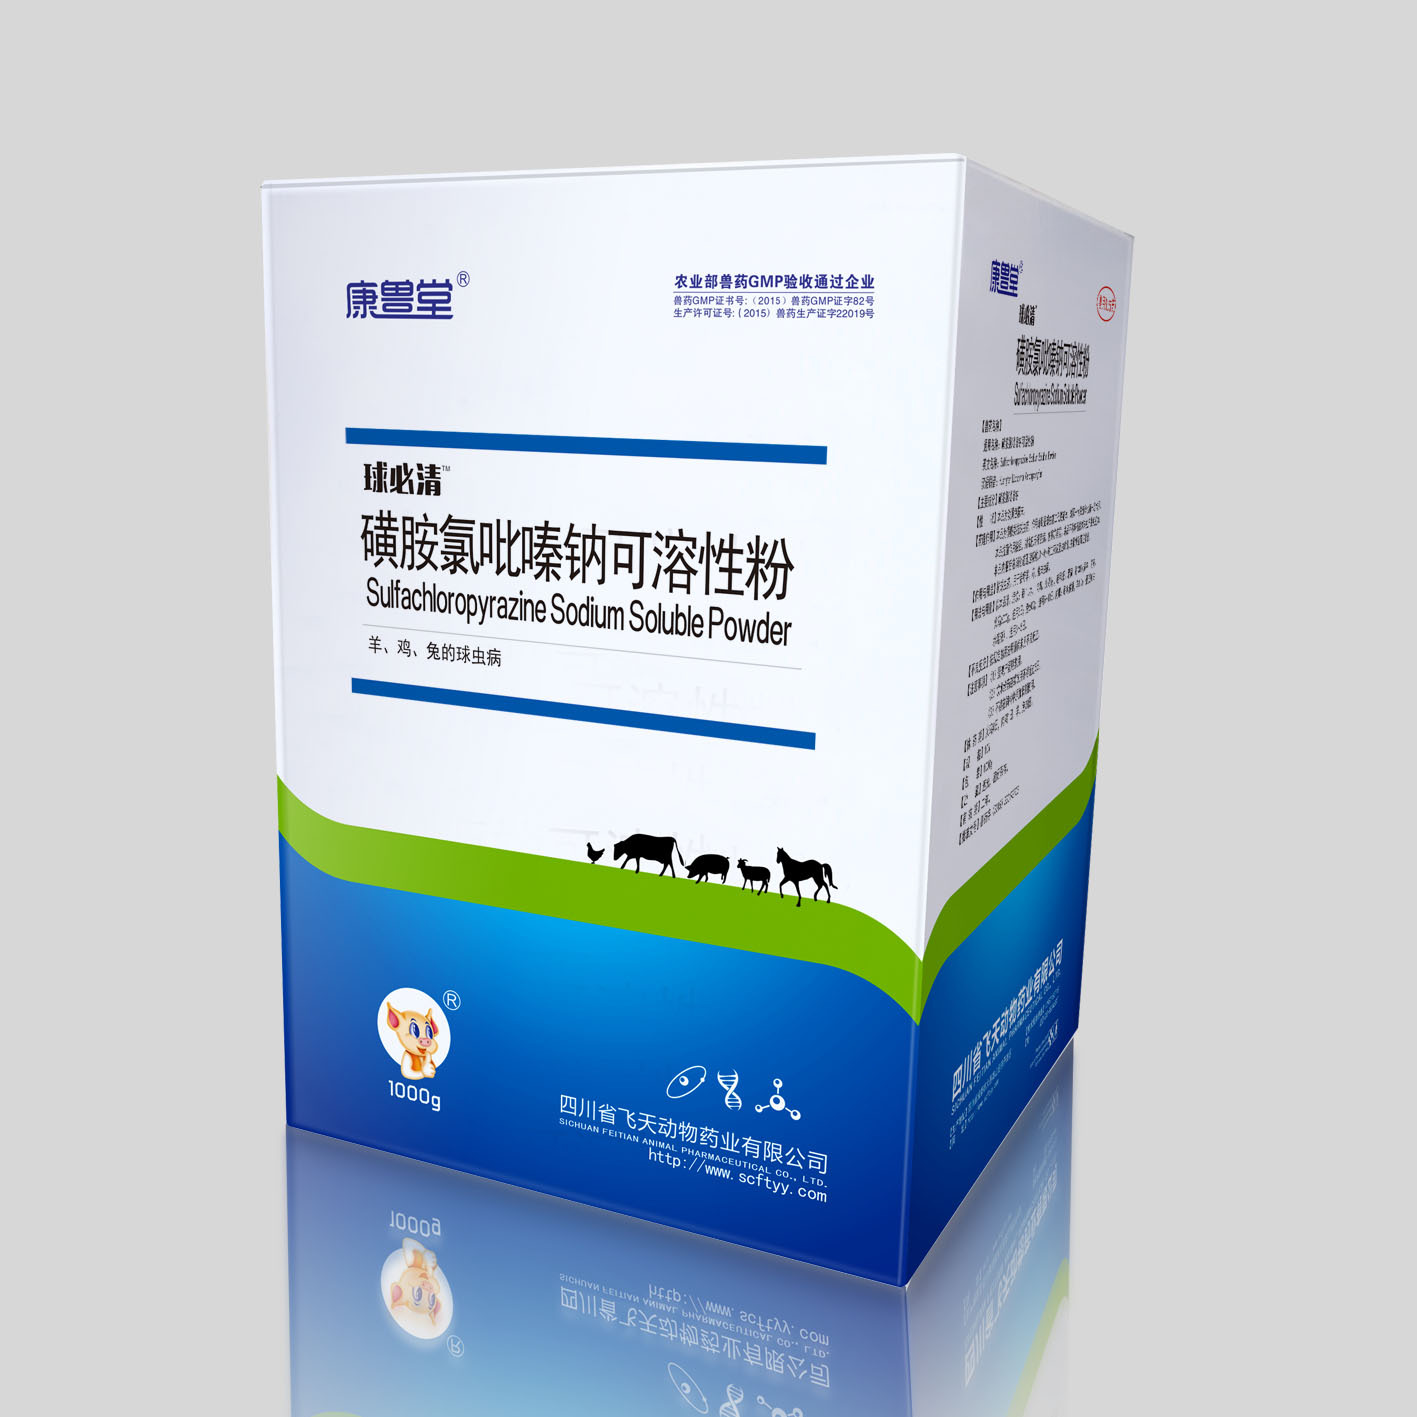 Sulfachloropyrazine sodium Soluble Powder